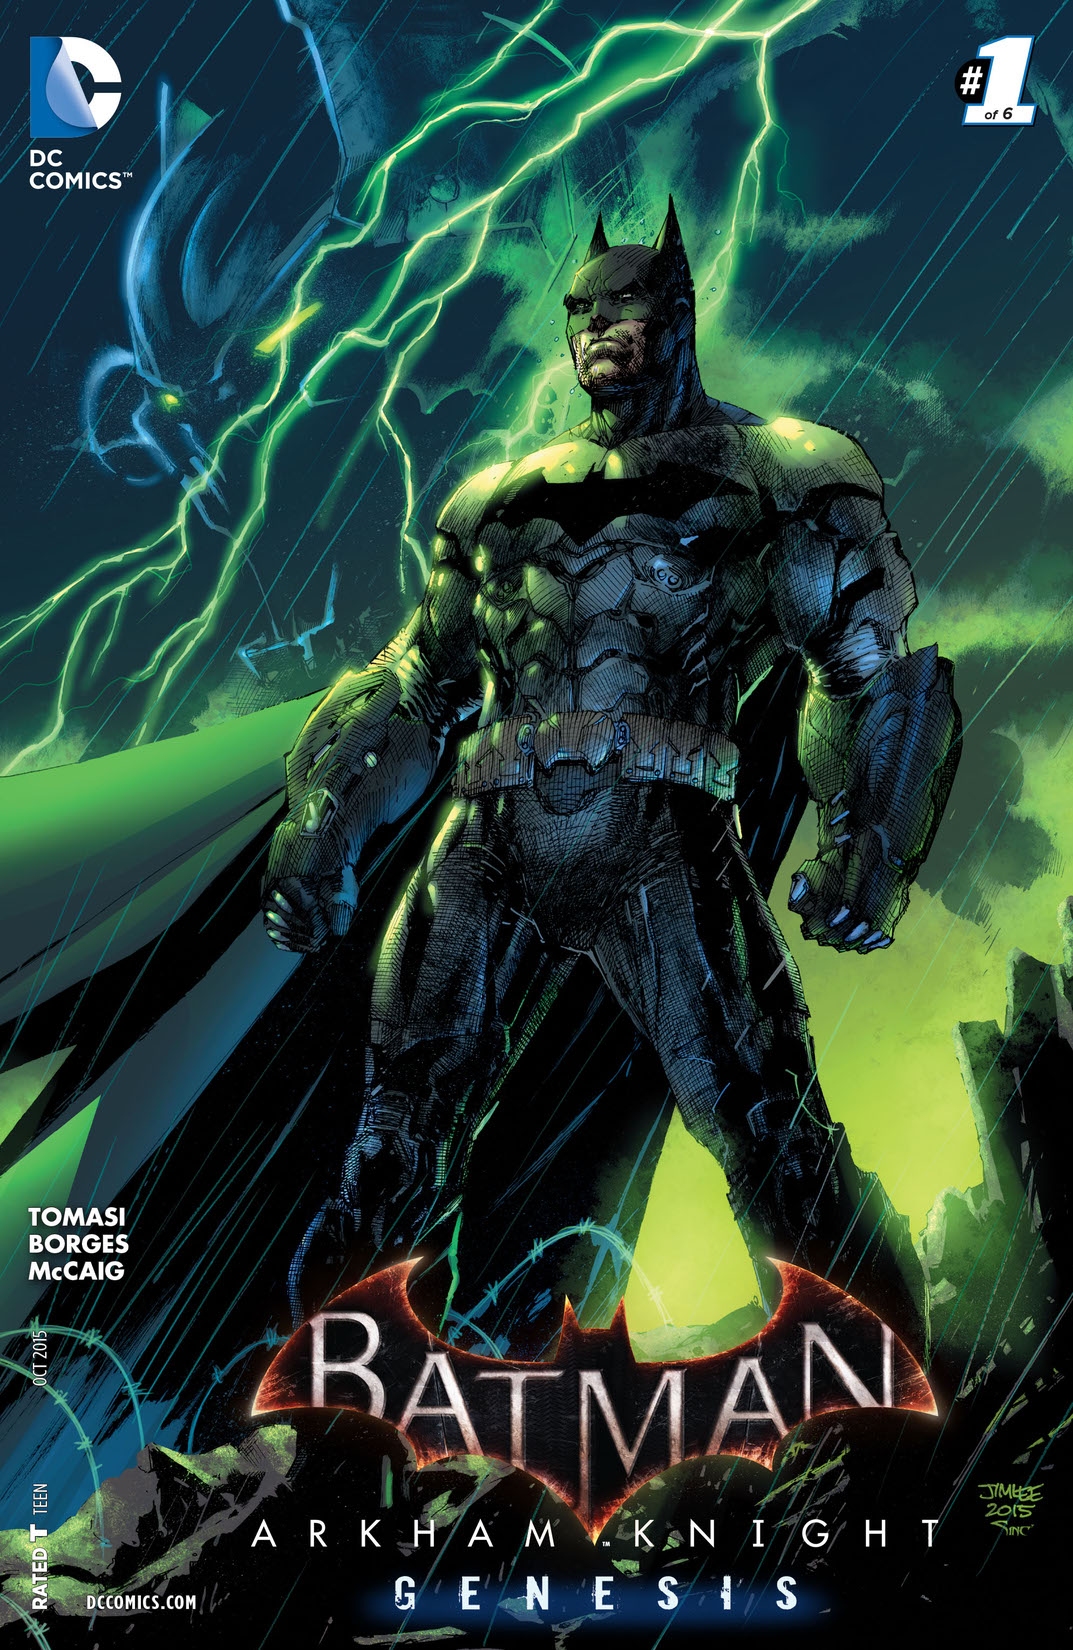 NEW!!! of 6 Batman Arkham Knight Genesis #6